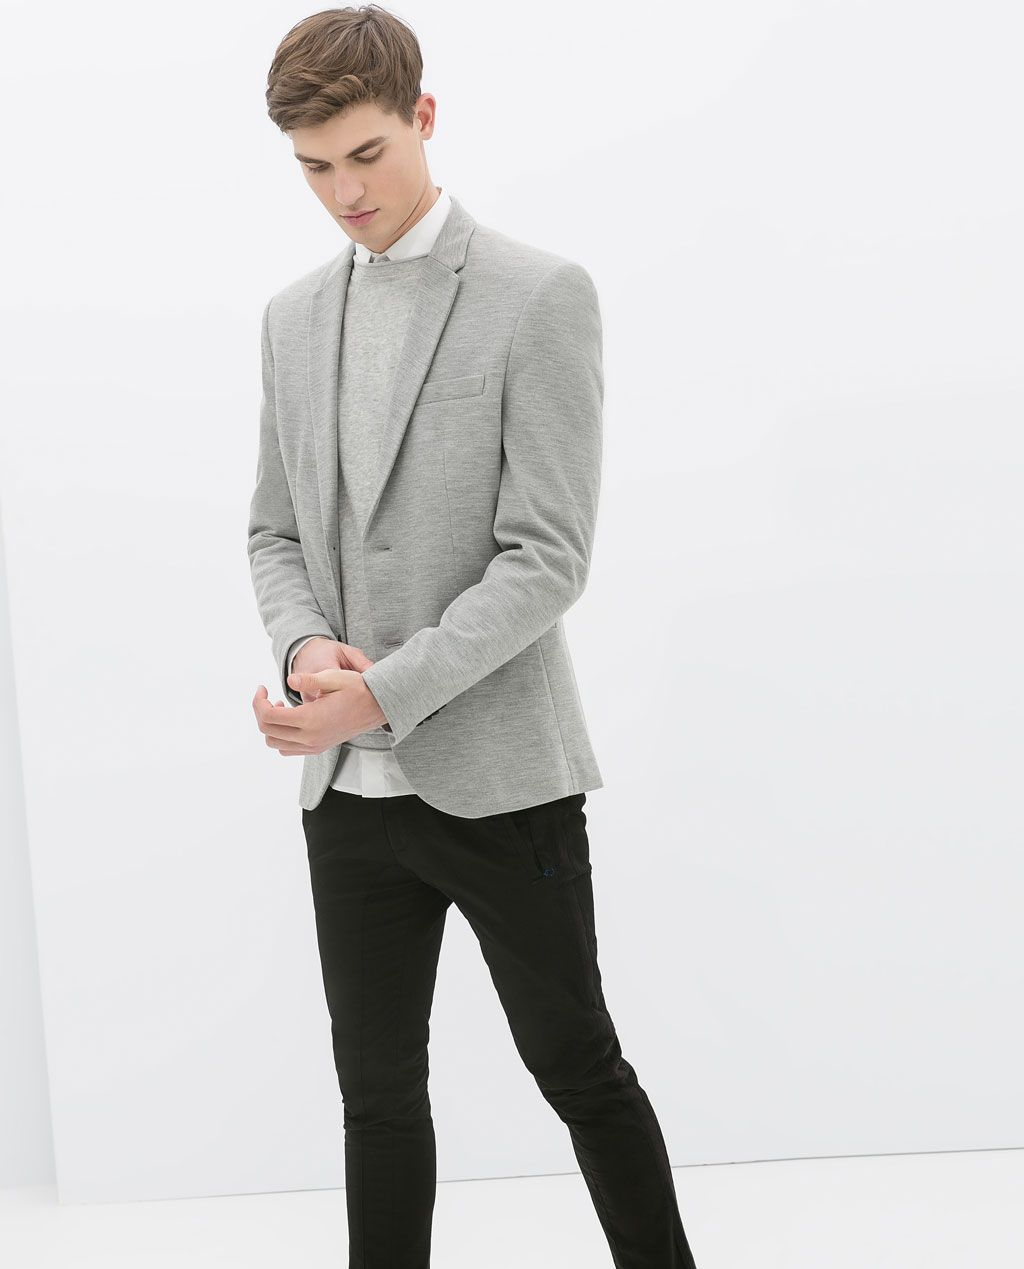 13 Ways to Wear Jeans With a Blazer When it comes down to achieving the smart-casual look, you cannot go wrong with jeans and a blazer. A classic combination in our books, this is our definitive guide on how to get the most out of the look and essentially become a wardrobe staple.